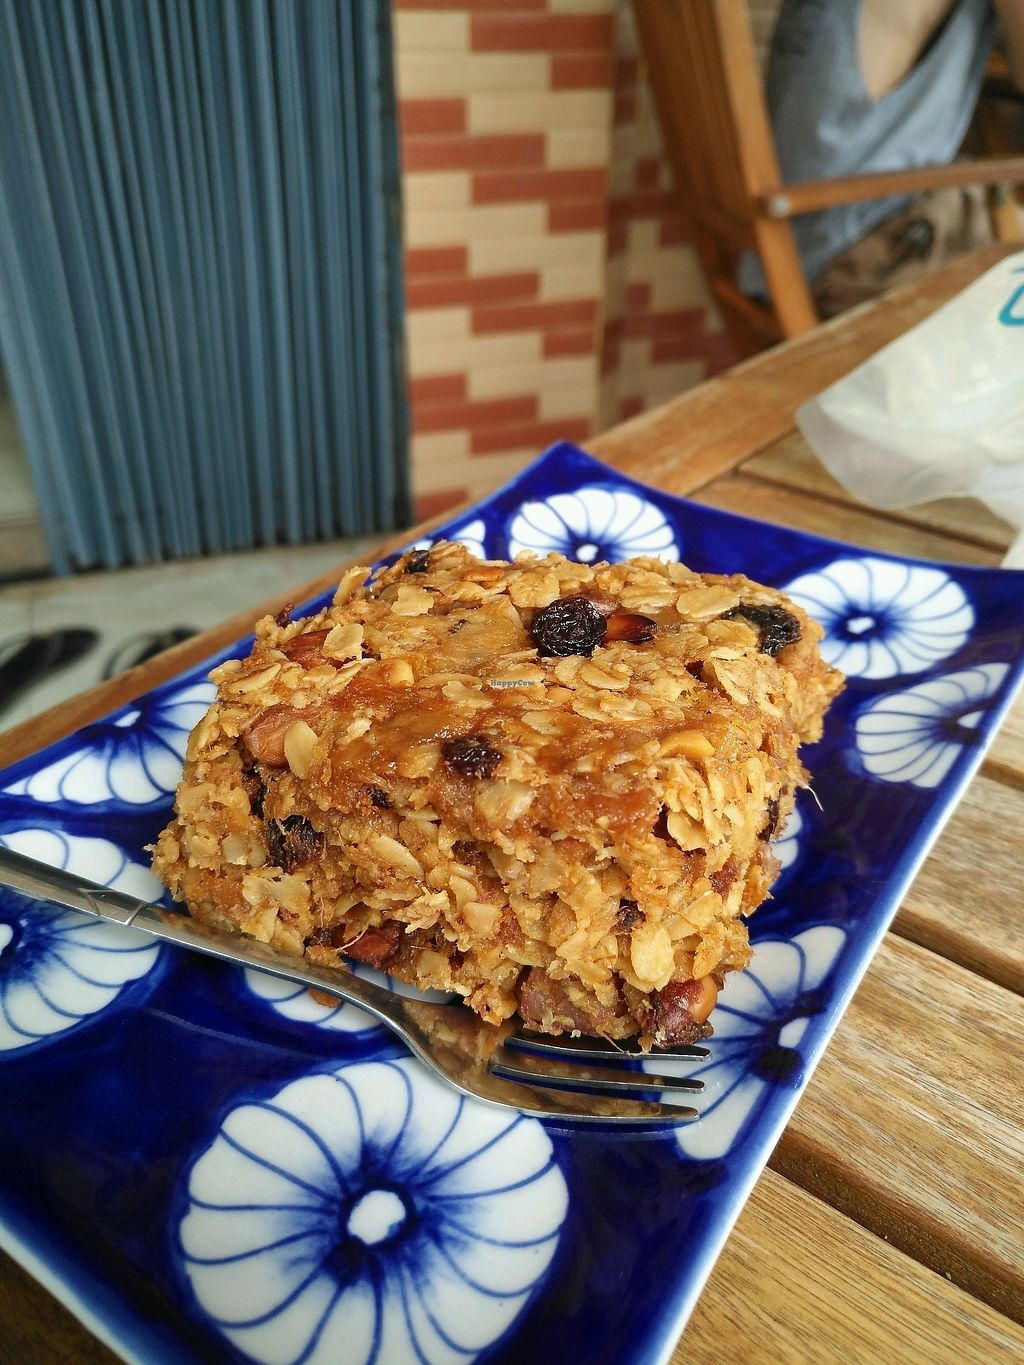 "Photo of Epic Arts Cafe  by <a href=""/members/profile/JulienR"">JulienR</a> <br/>Vegan flapjack <br/> January 24, 2018  - <a href='/contact/abuse/image/50298/350314'>Report</a>"